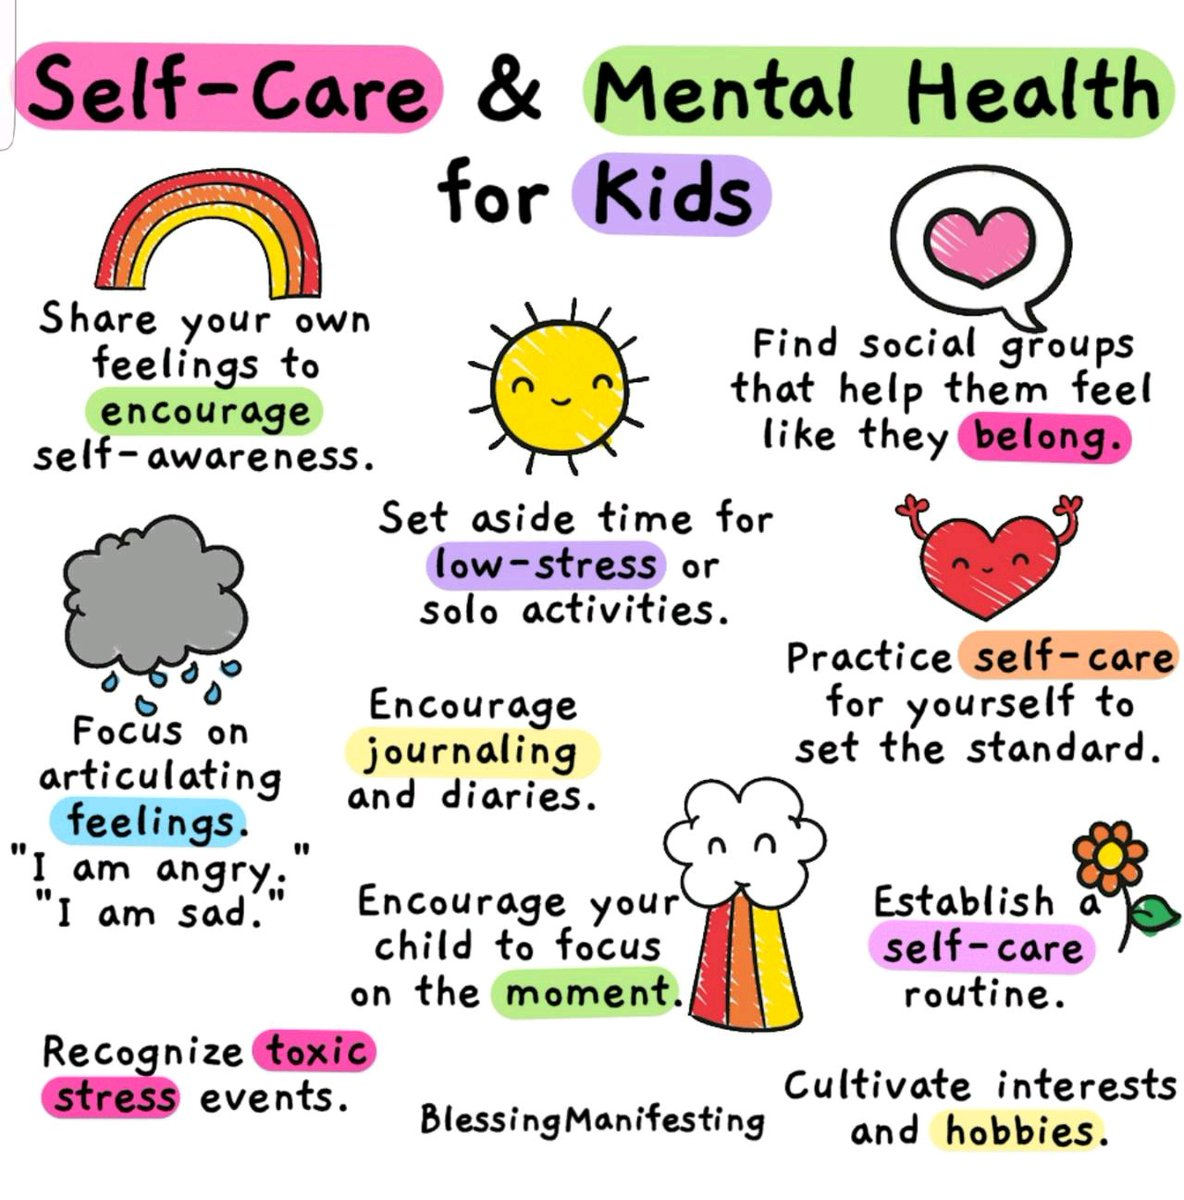 Taking care of mental health is the best thing we can do for kids right now! 🙌